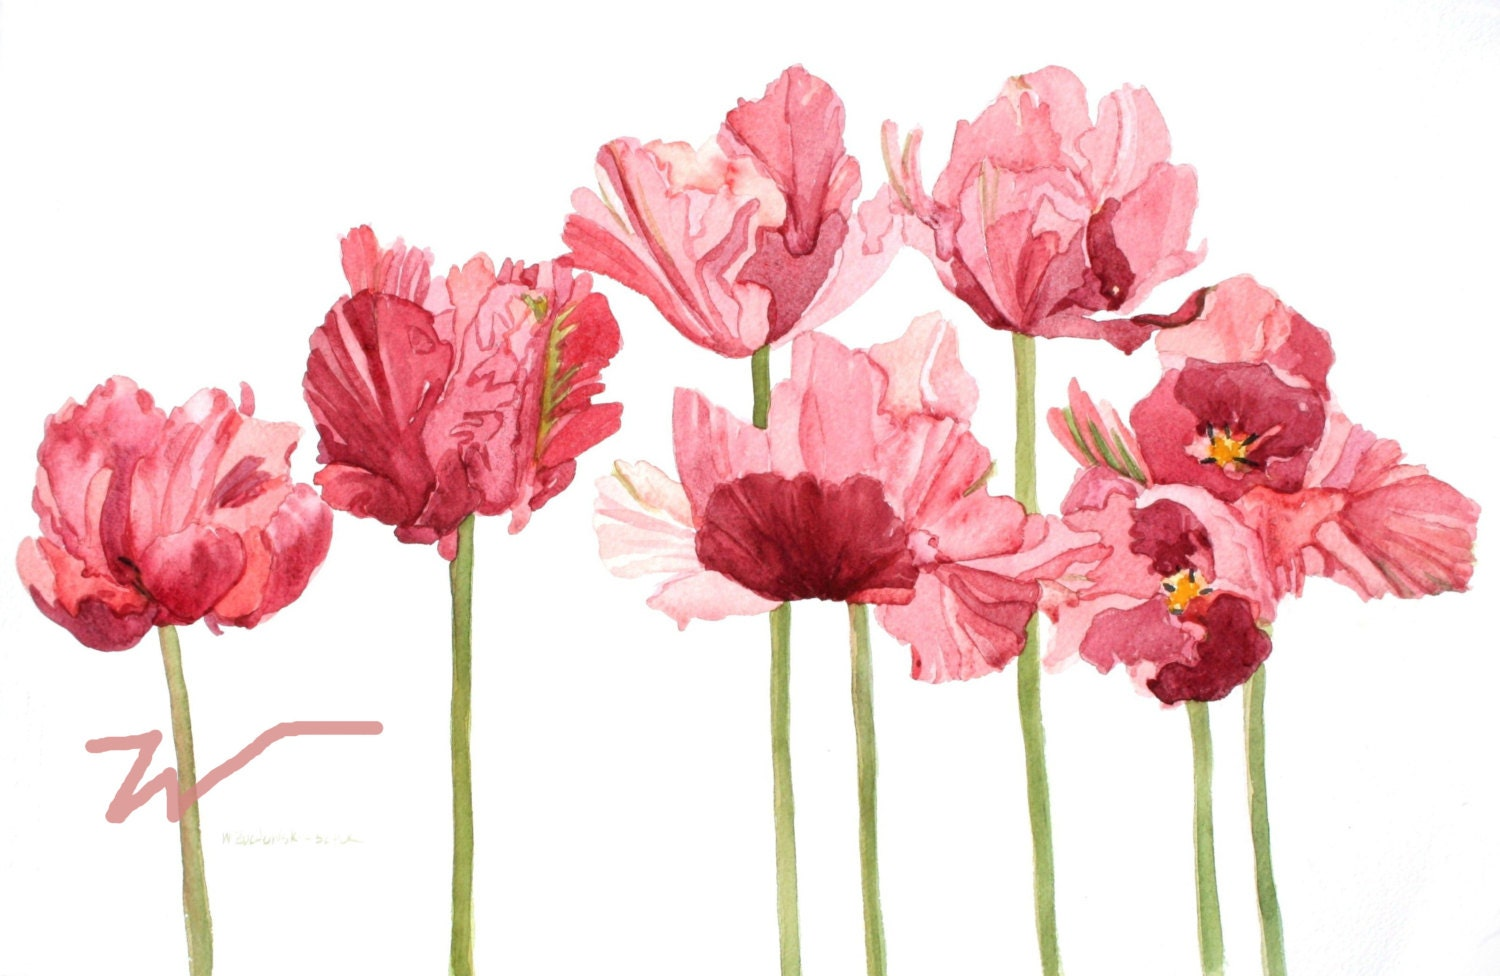 Pink Parrot Tulip Field Watercolor